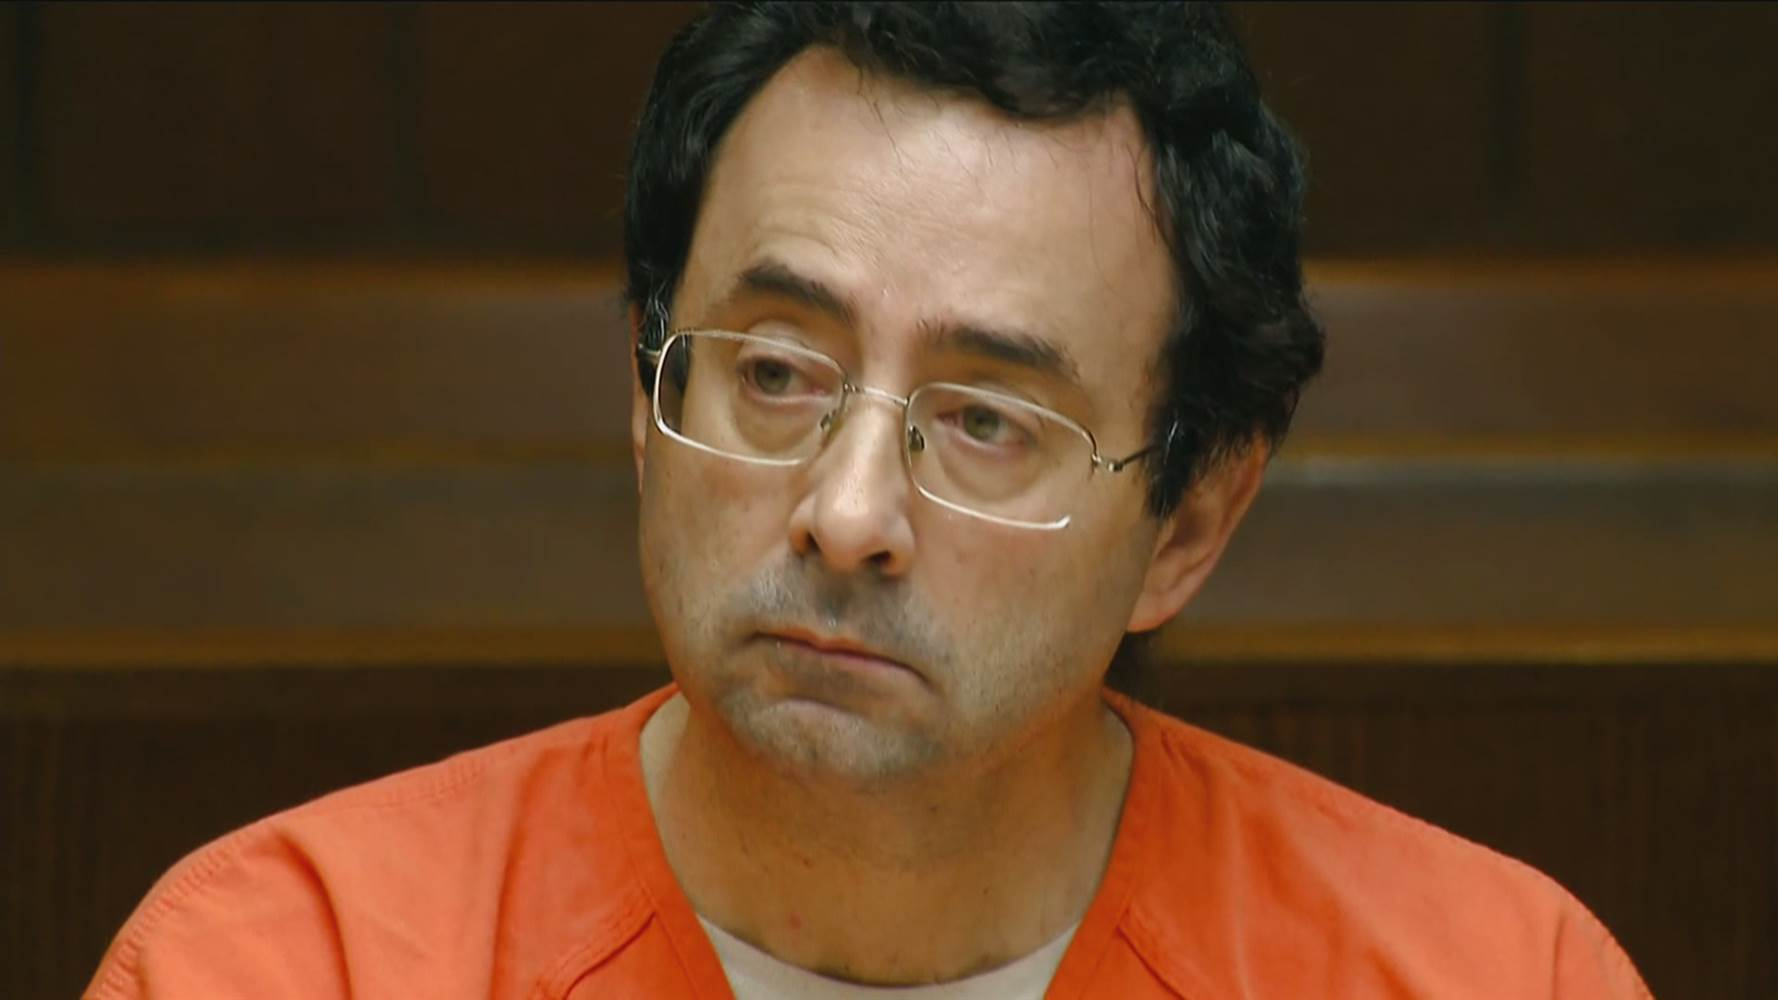 Former_team_doctor_US_admitted_to_sexually_assaulting_gymnasts